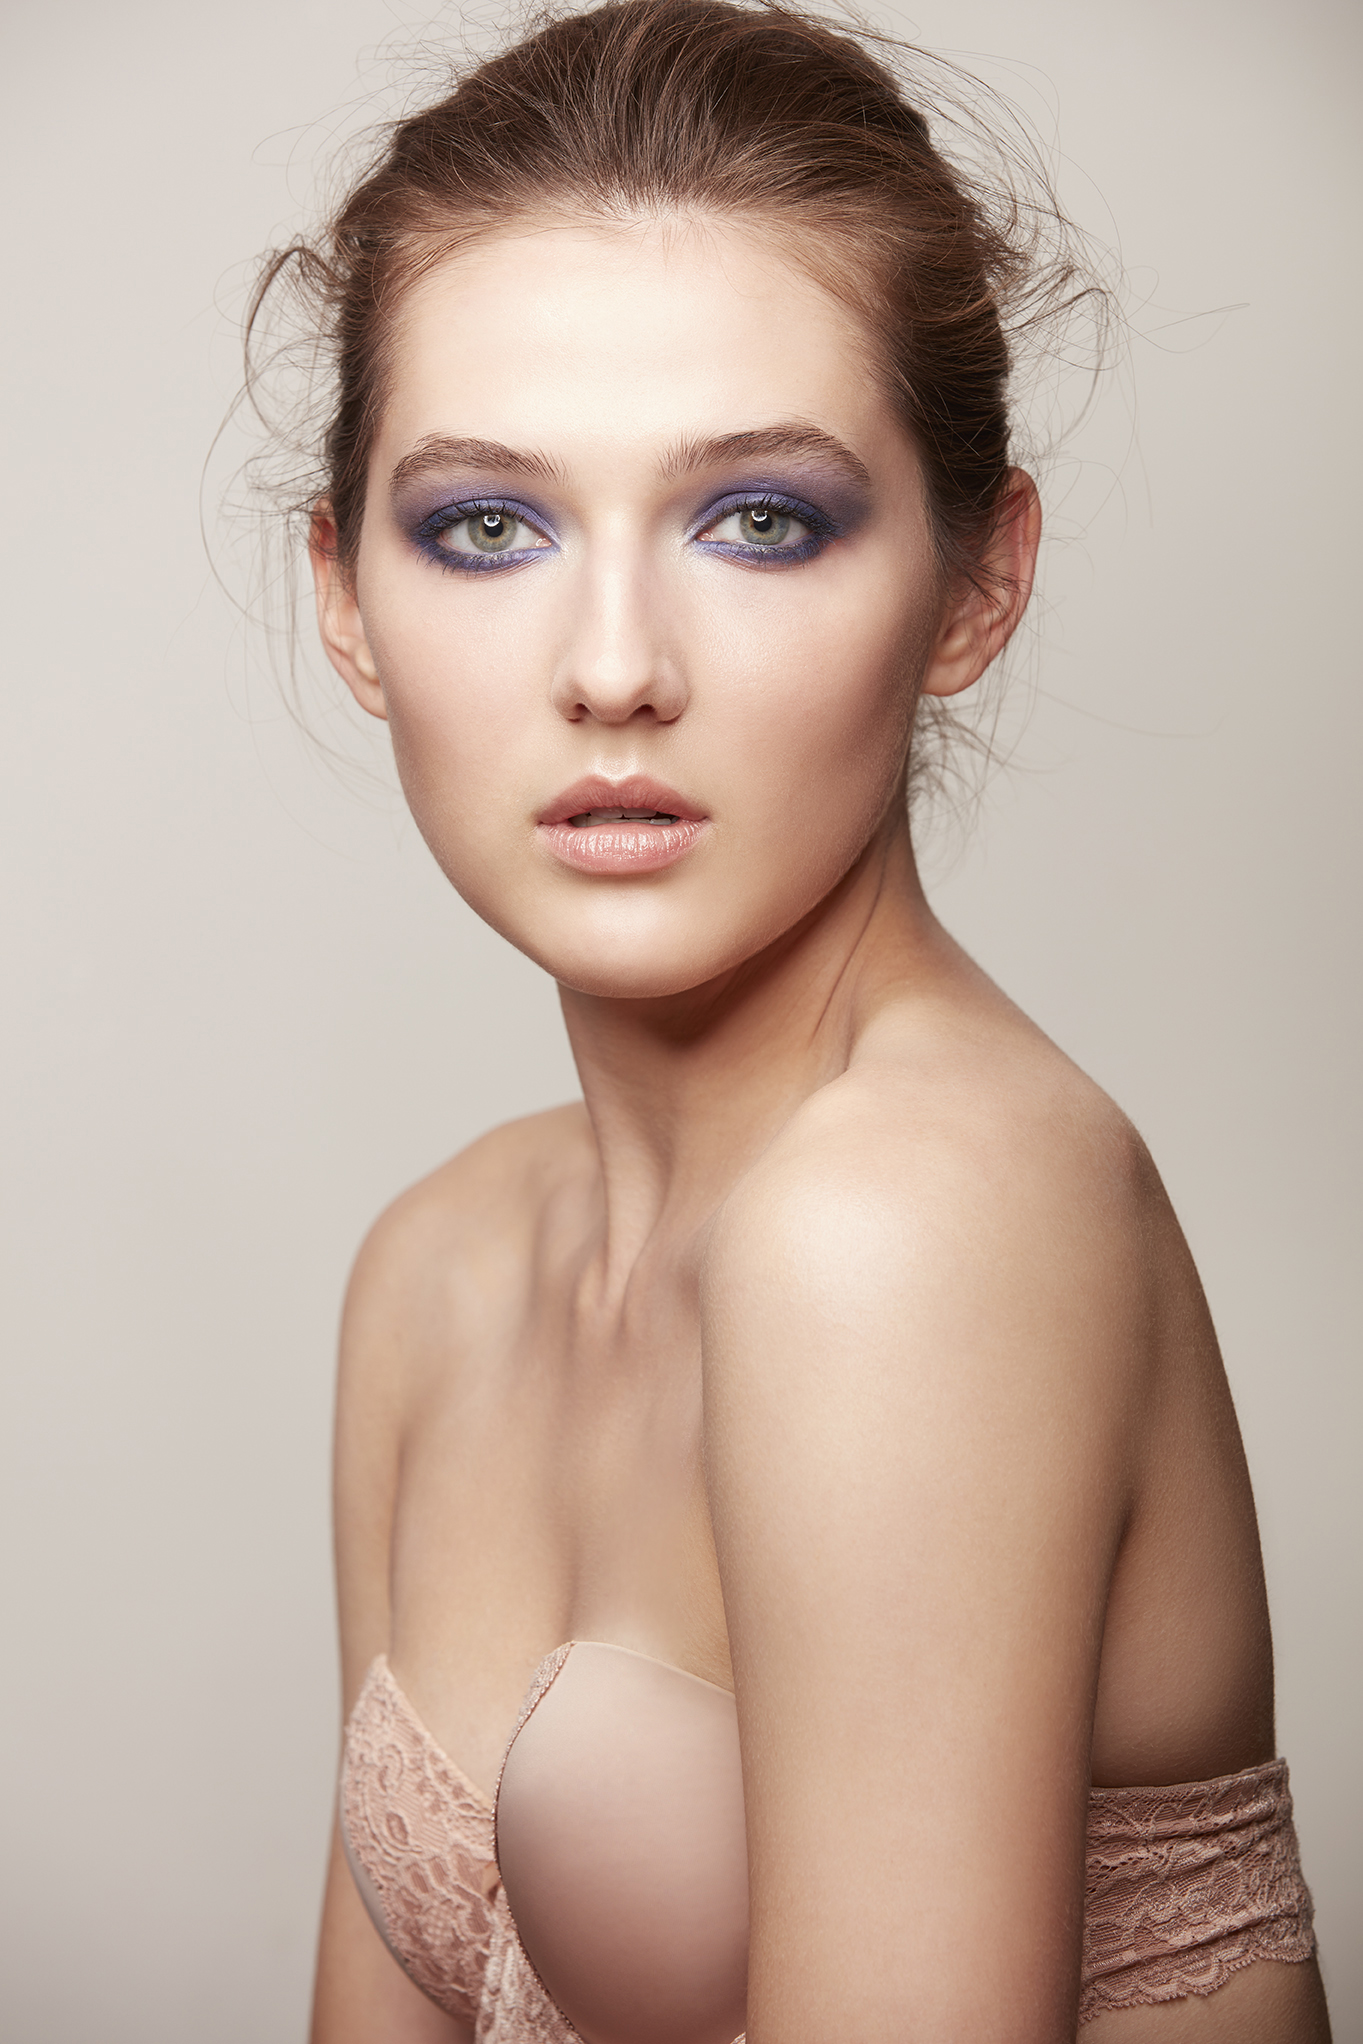 retouched woman with hair up wearing periwinkle eye shadow